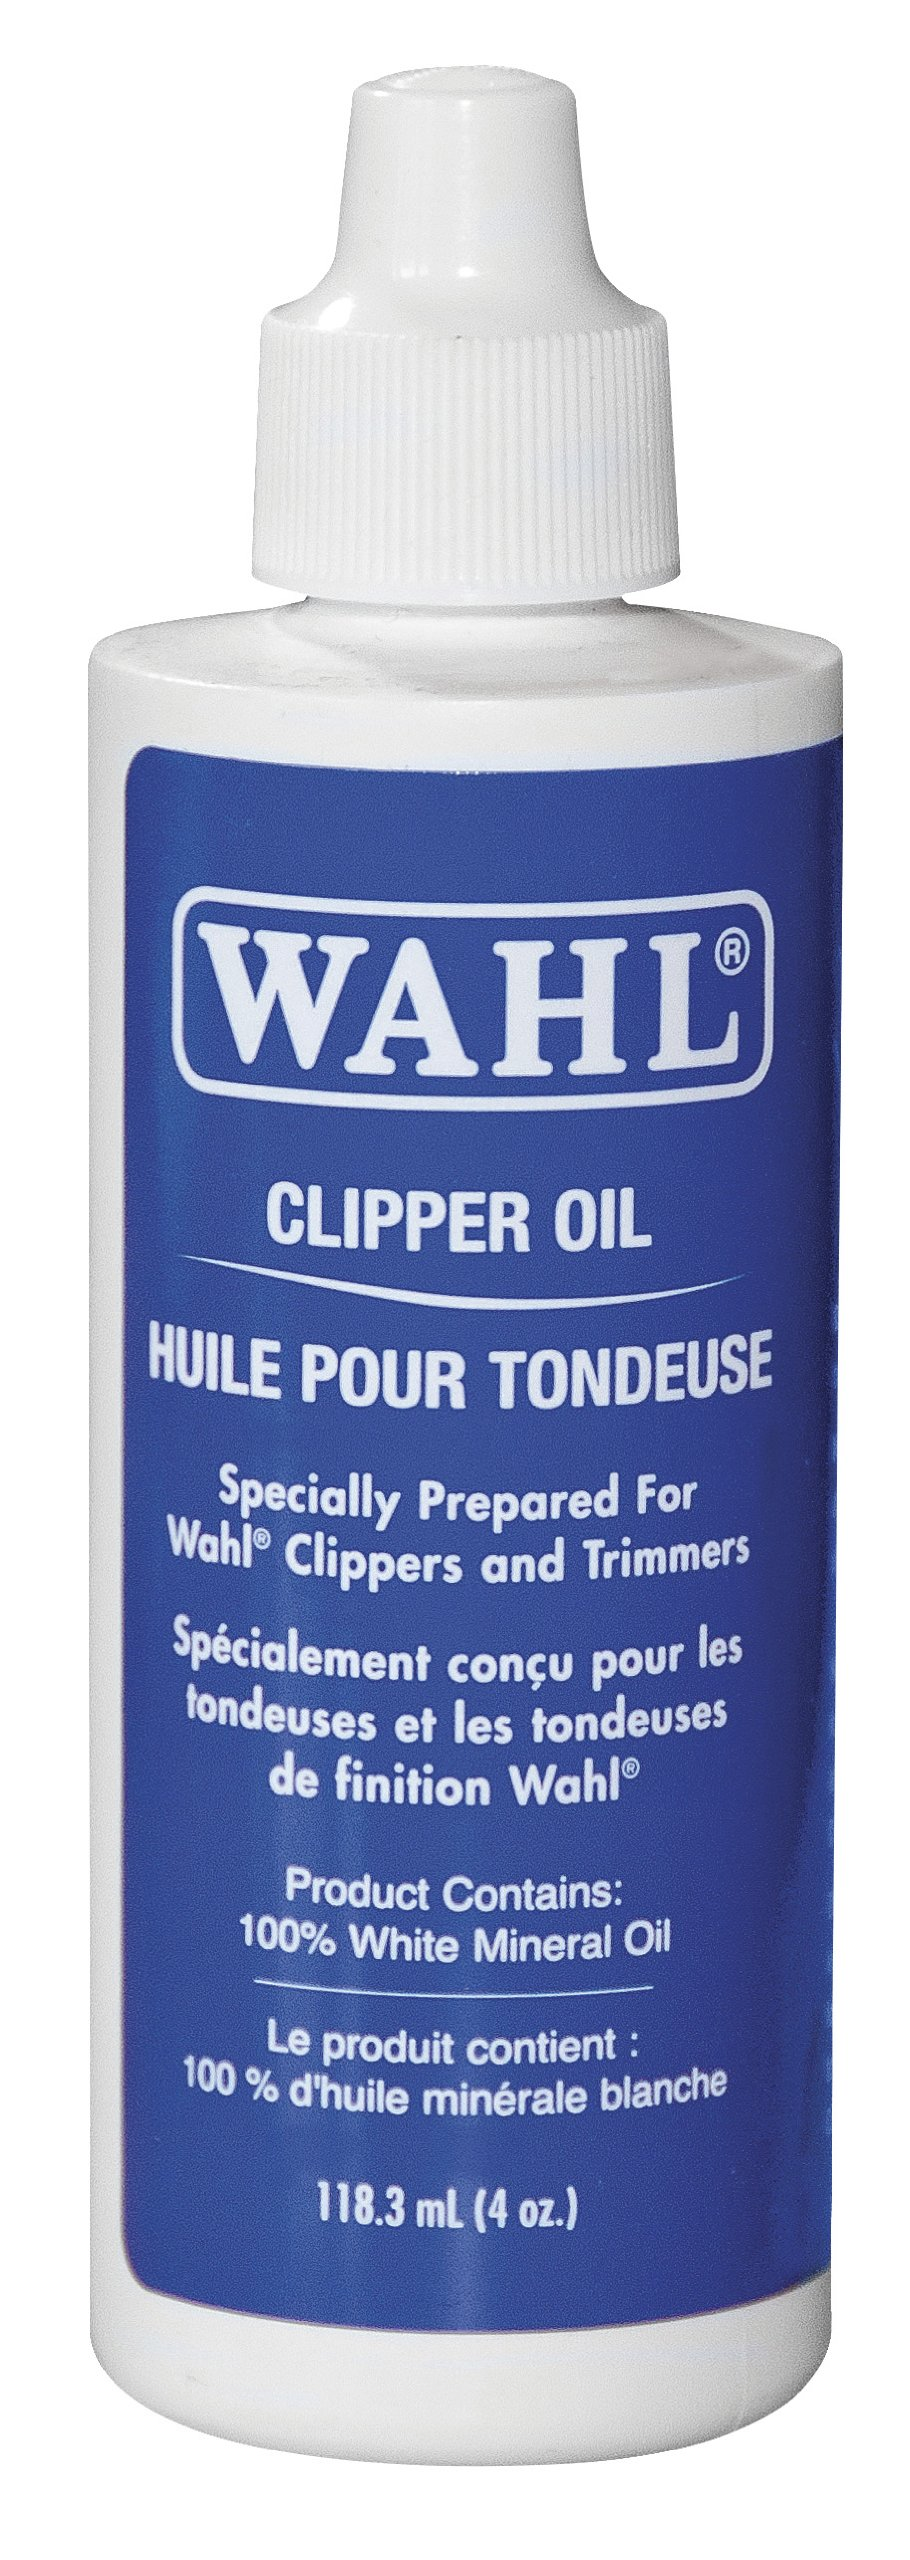 Wahl Clipper Oil, Clear product image